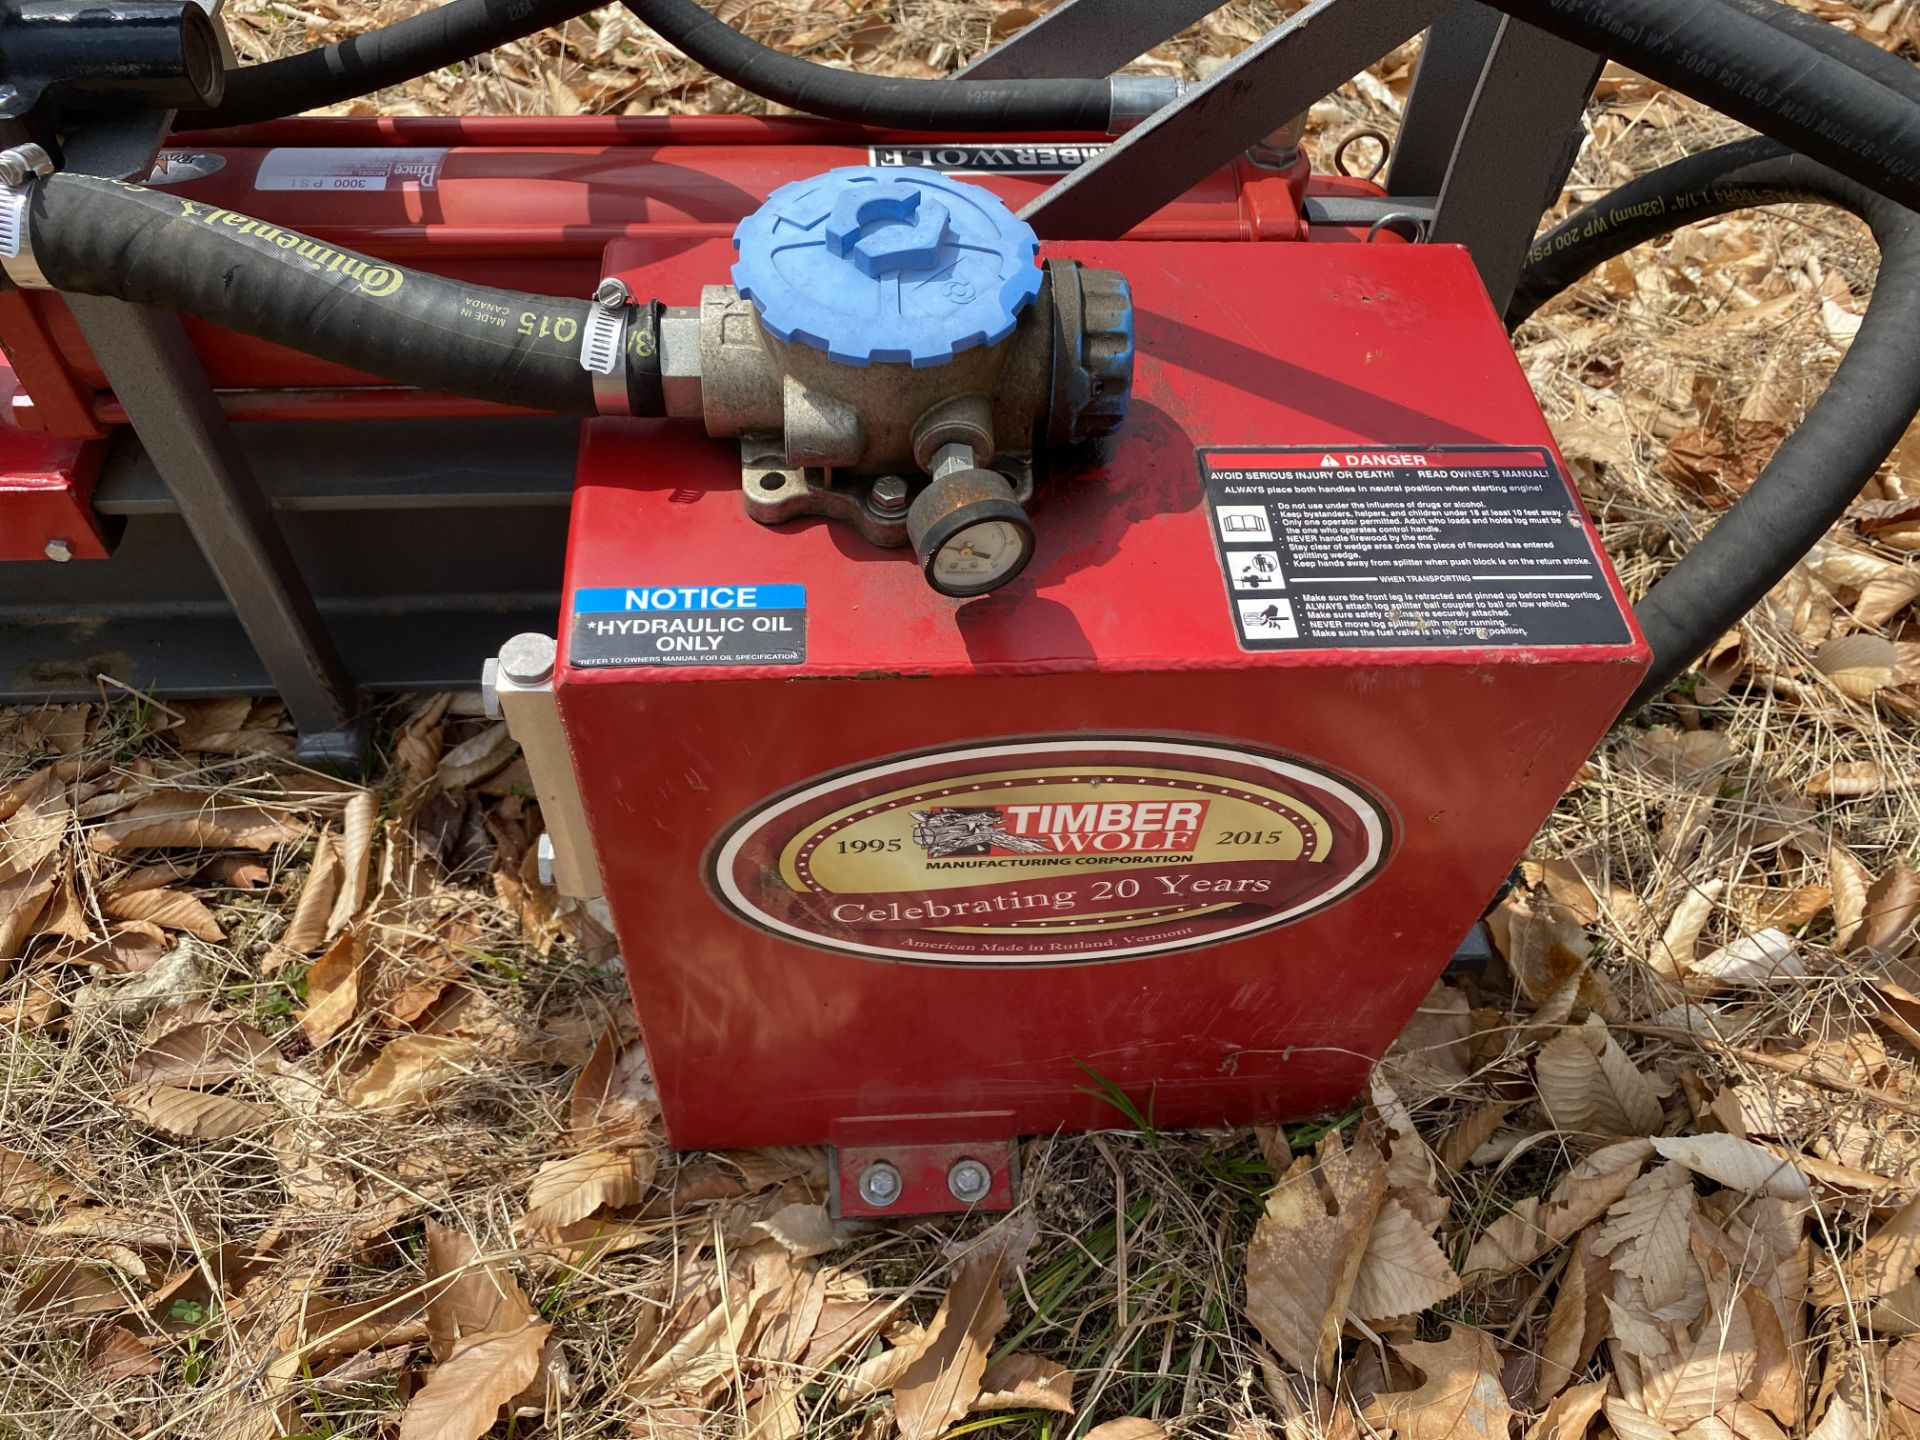 Timber Wolf Log Splitter w/Prince Attachment. 3000 PSI, Bore 5, 3 Part Attachment, 23 Stroke, - Image 3 of 4